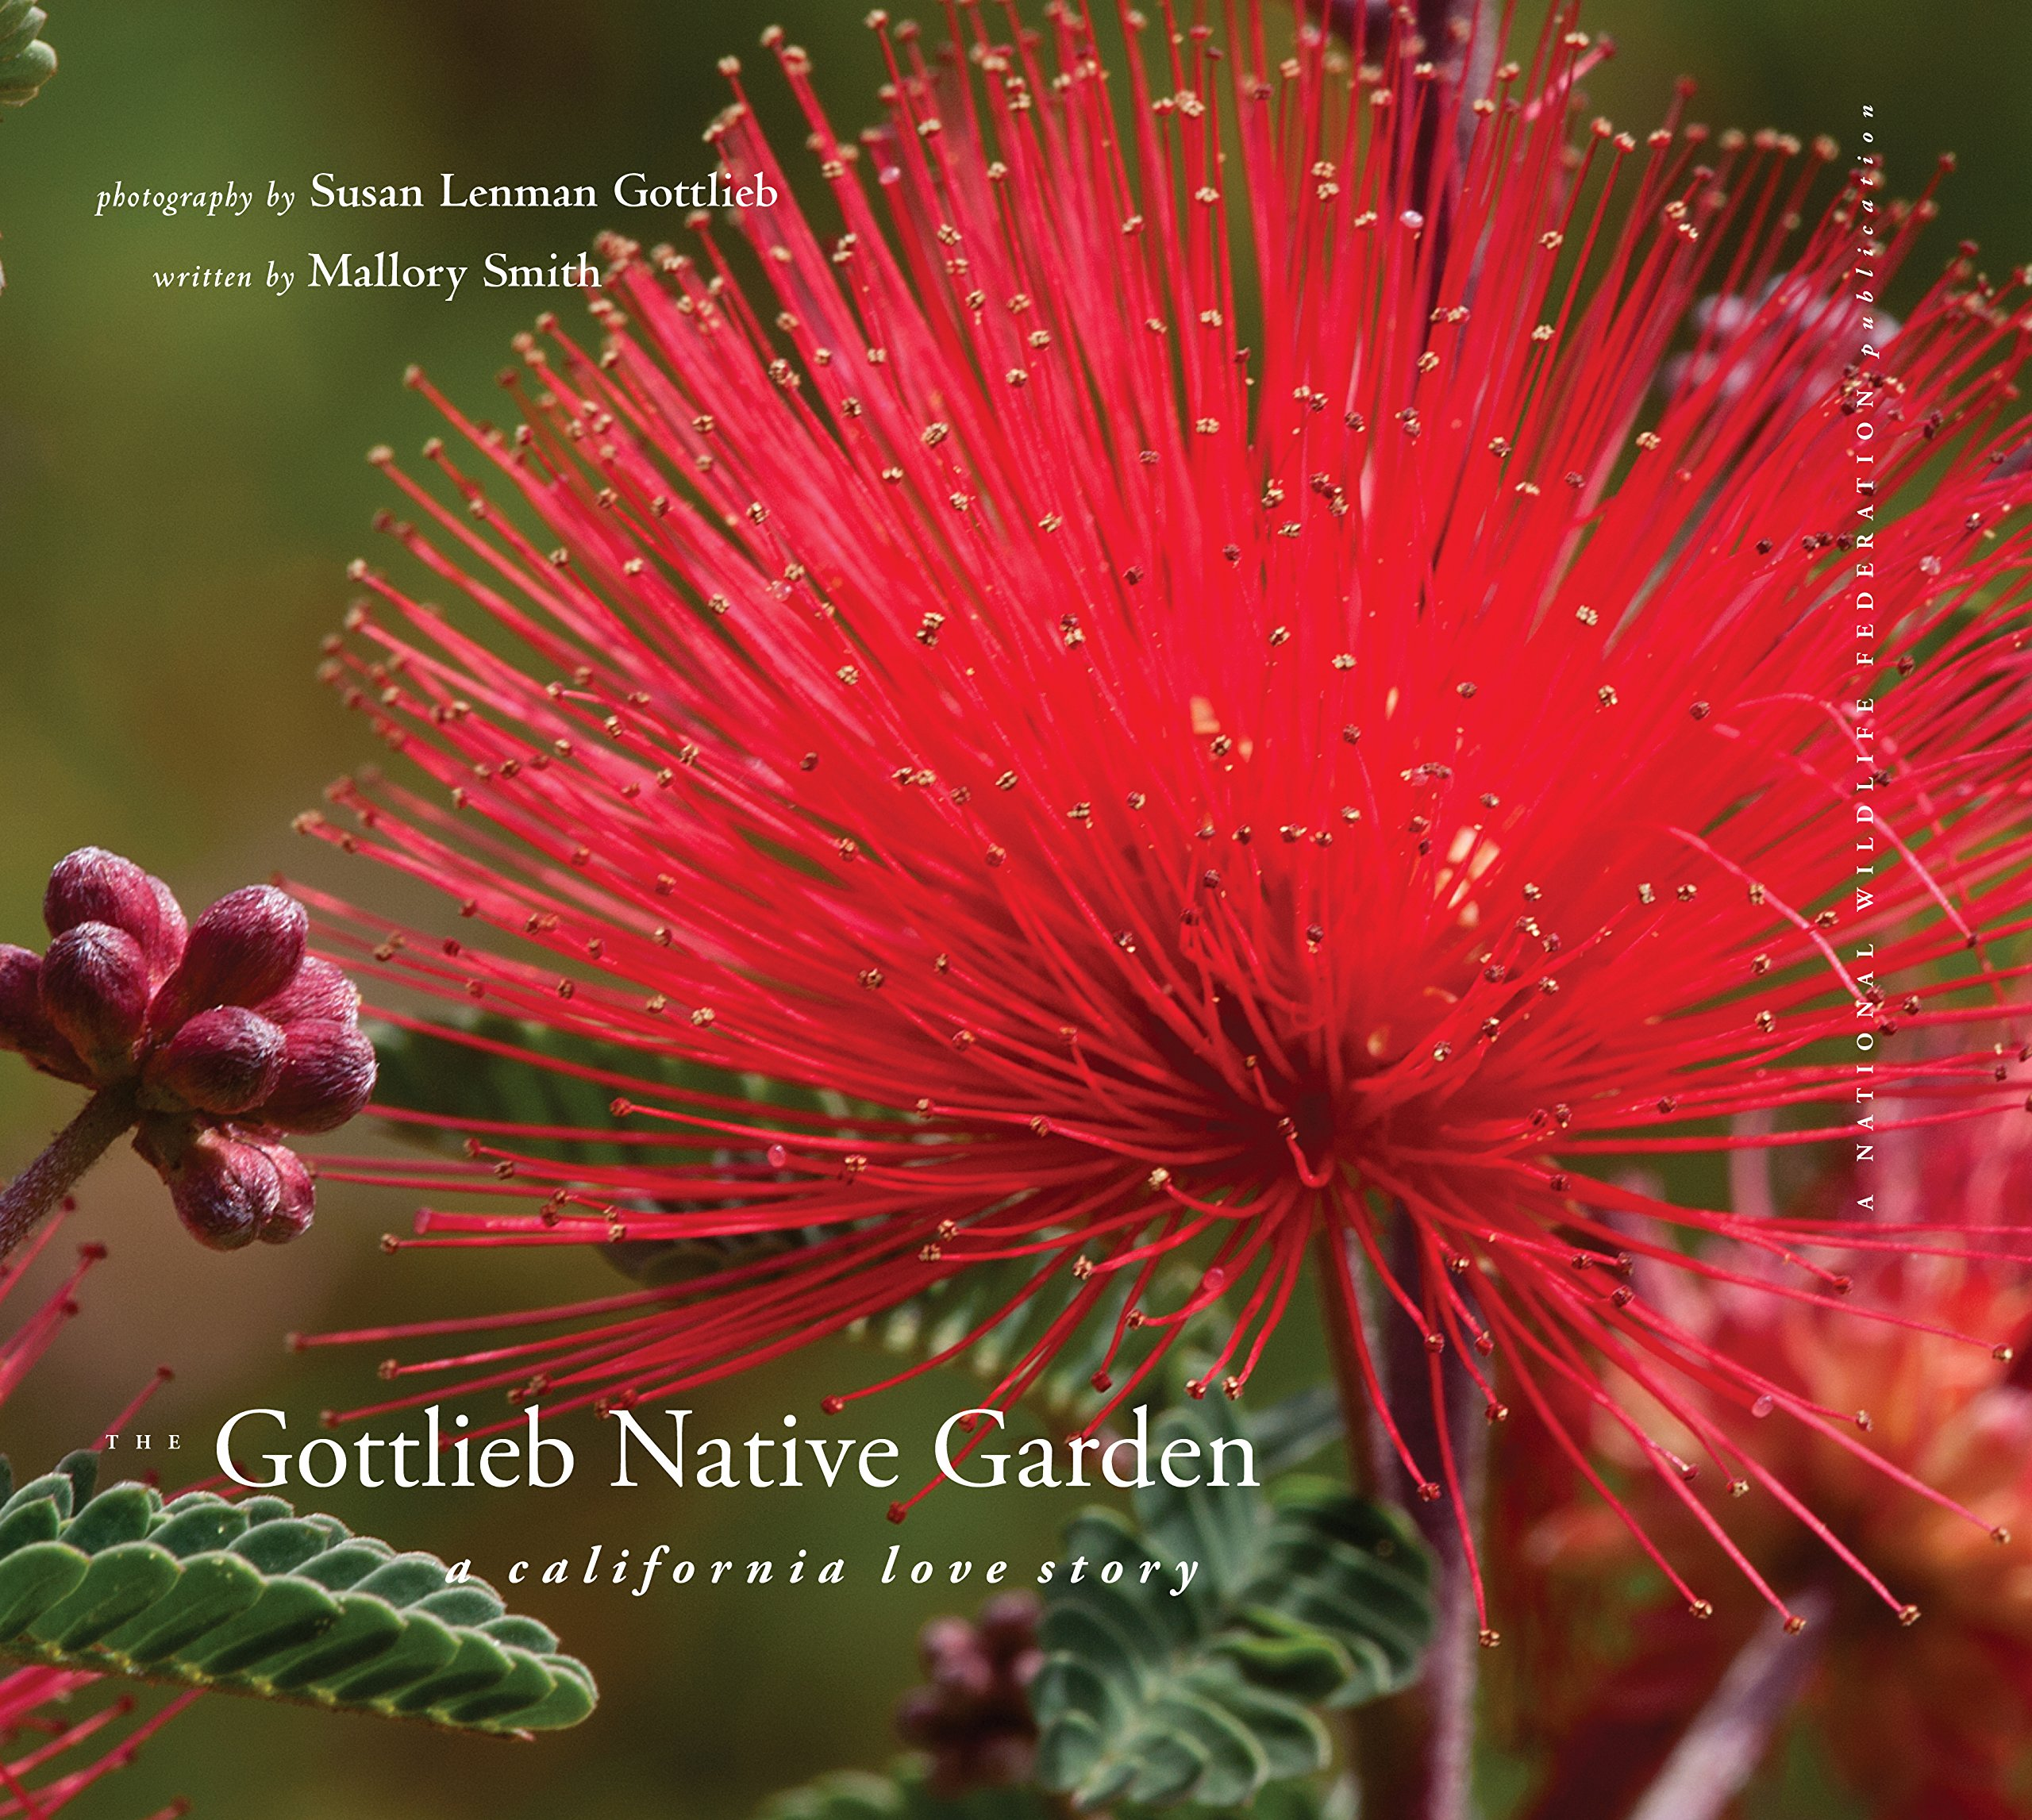 Book Cover for Gottleib Native Garden: A California Love Story